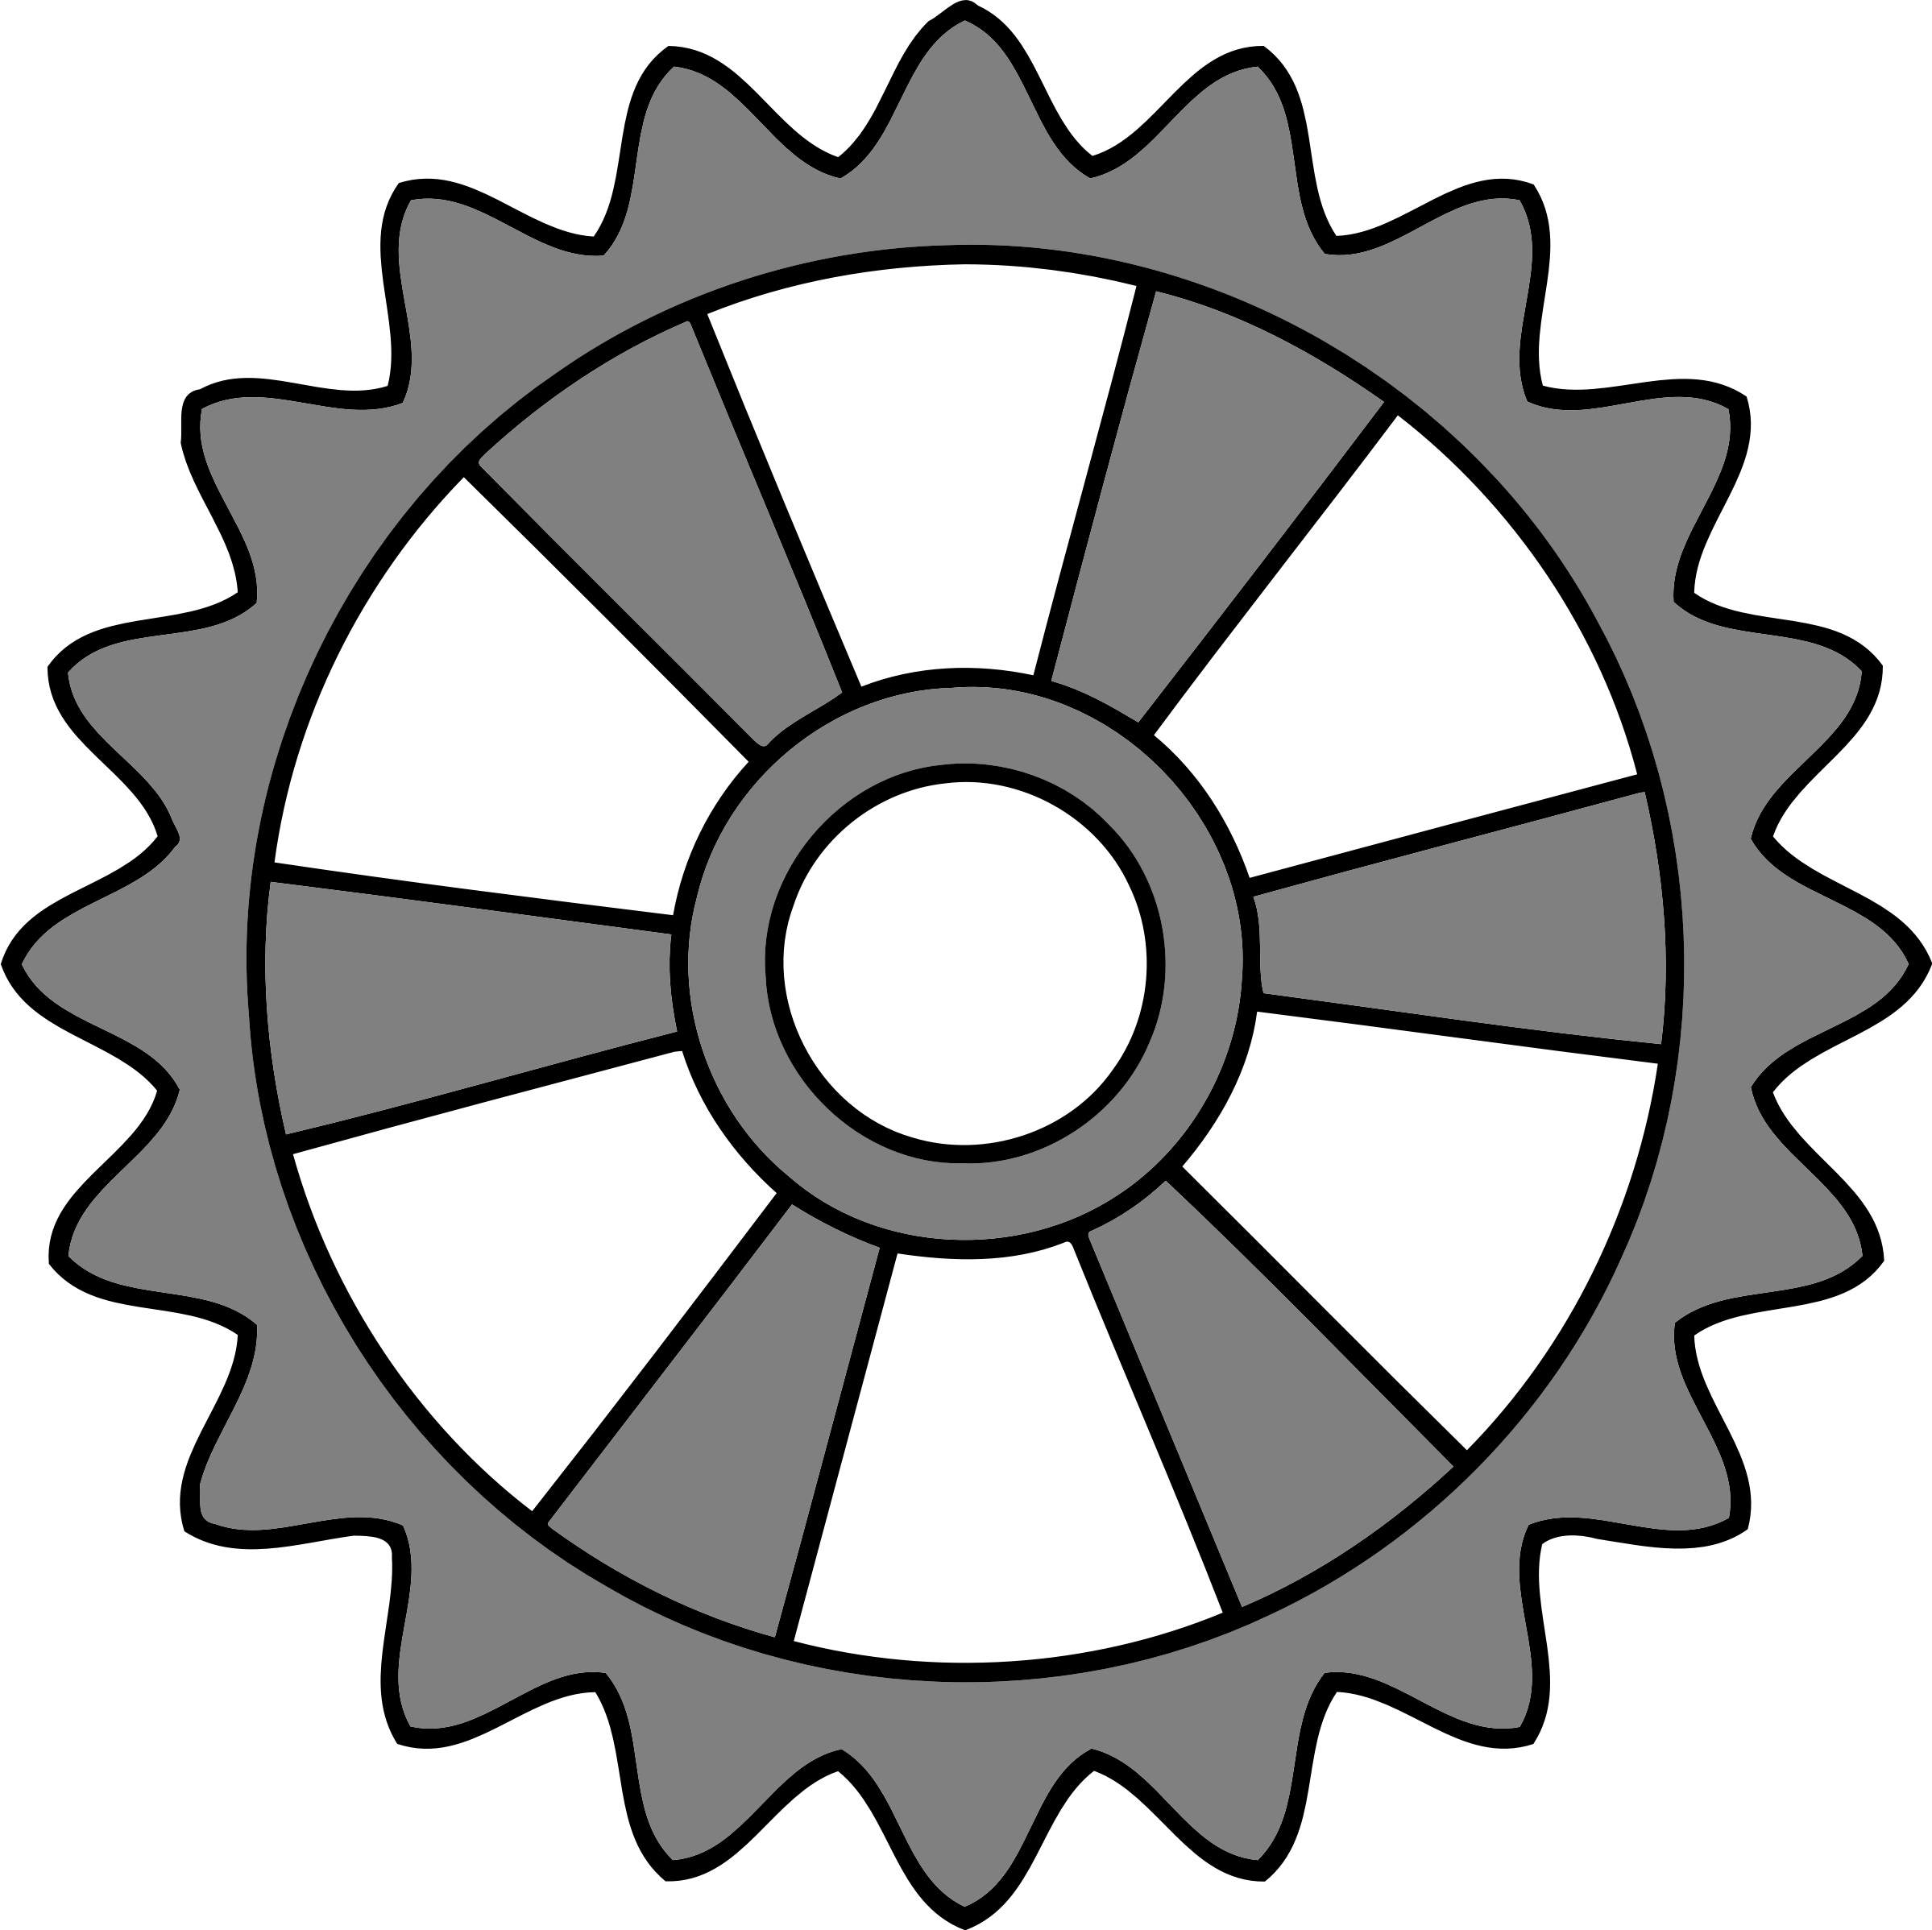 20-tooth gear with radial spokes by Firkin